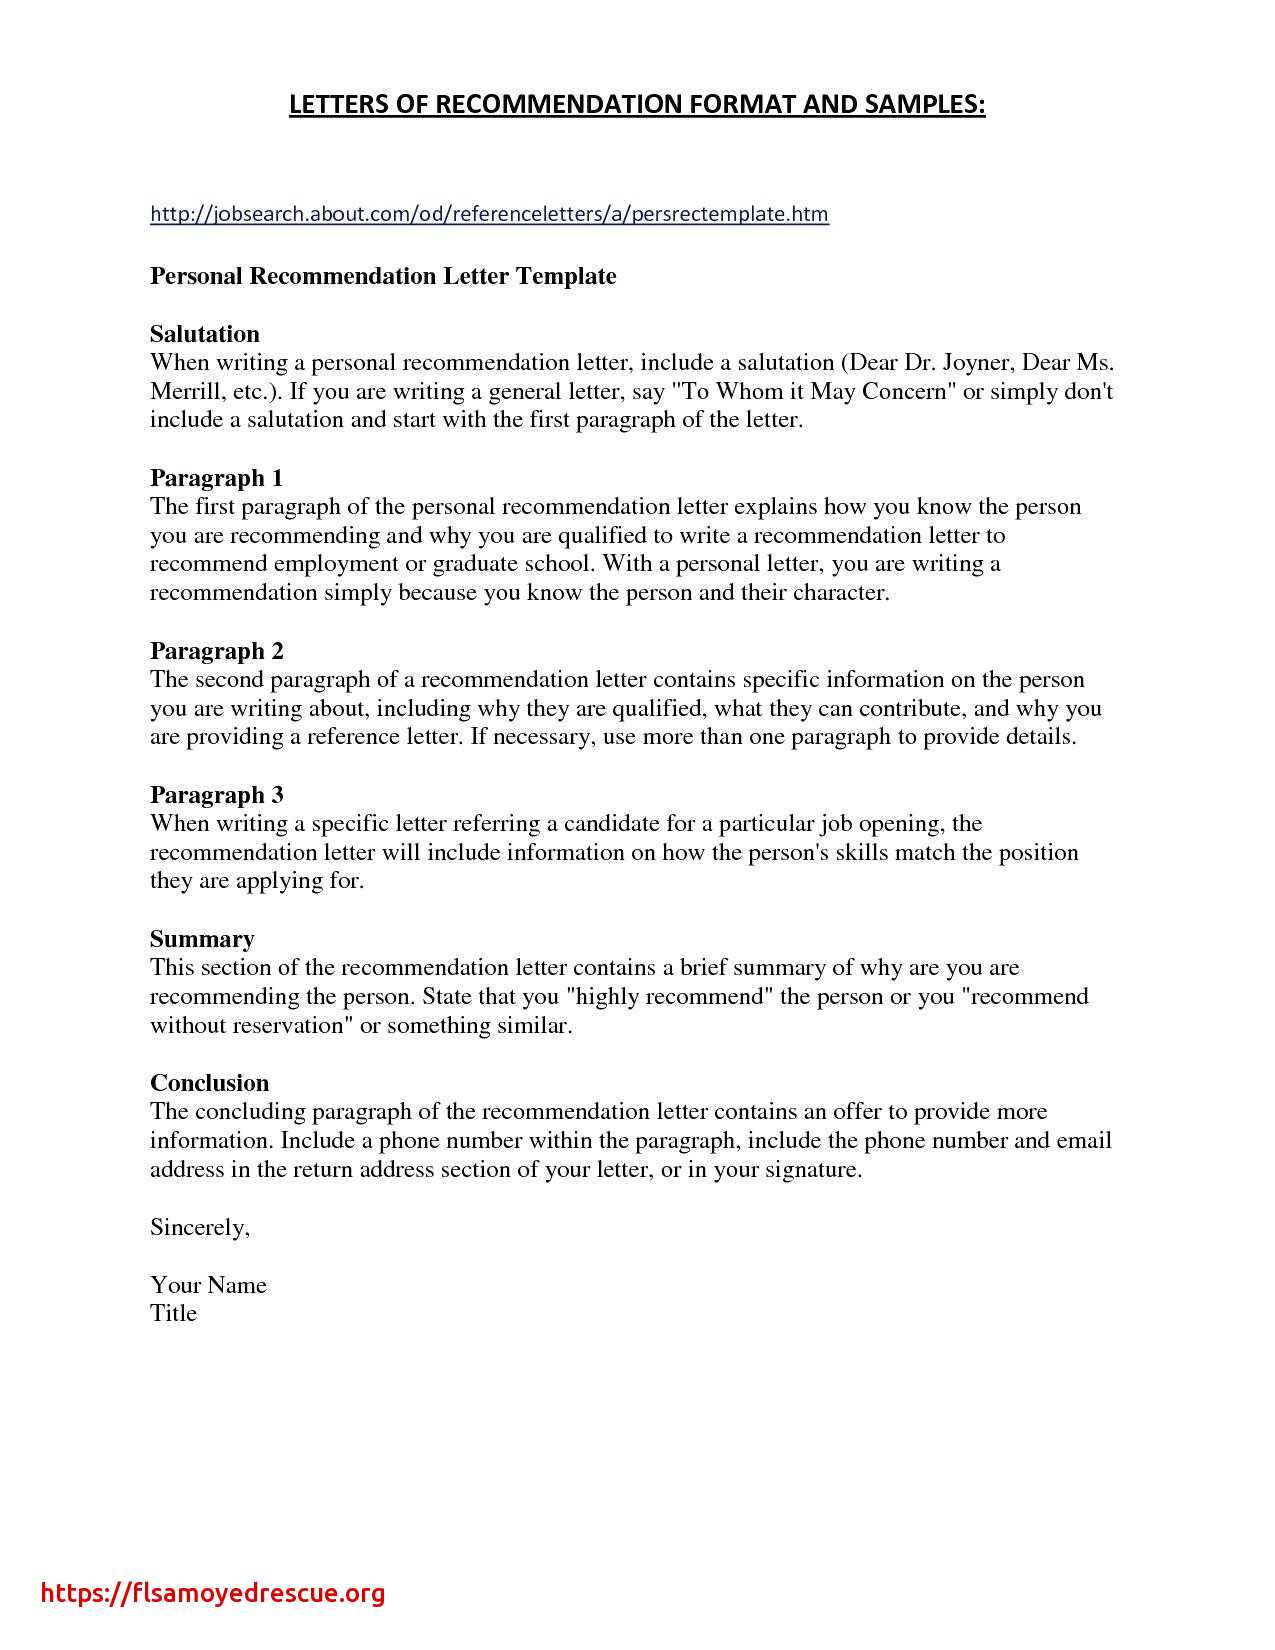 Letter of recommendation template for employee samples letter letter of recommendation template for employee character reference letter template doc new writing letter reference maxwellsz